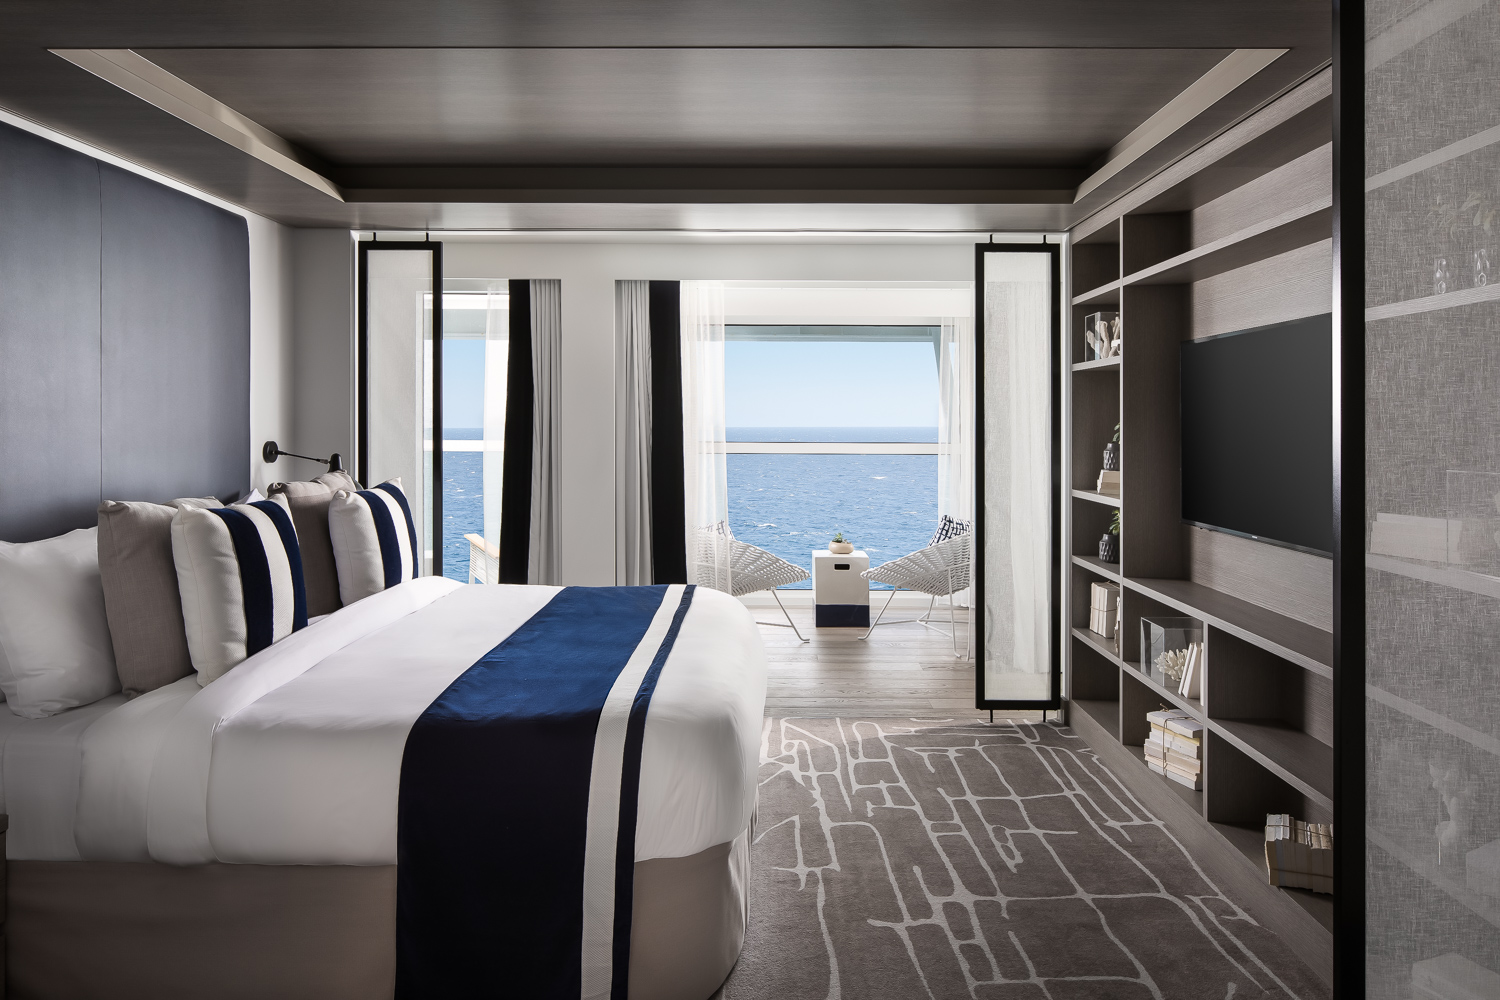 Master bedroom of the  Penthouse Suite.  Complete with dressing room and en-suite bathroom with private hot tub.